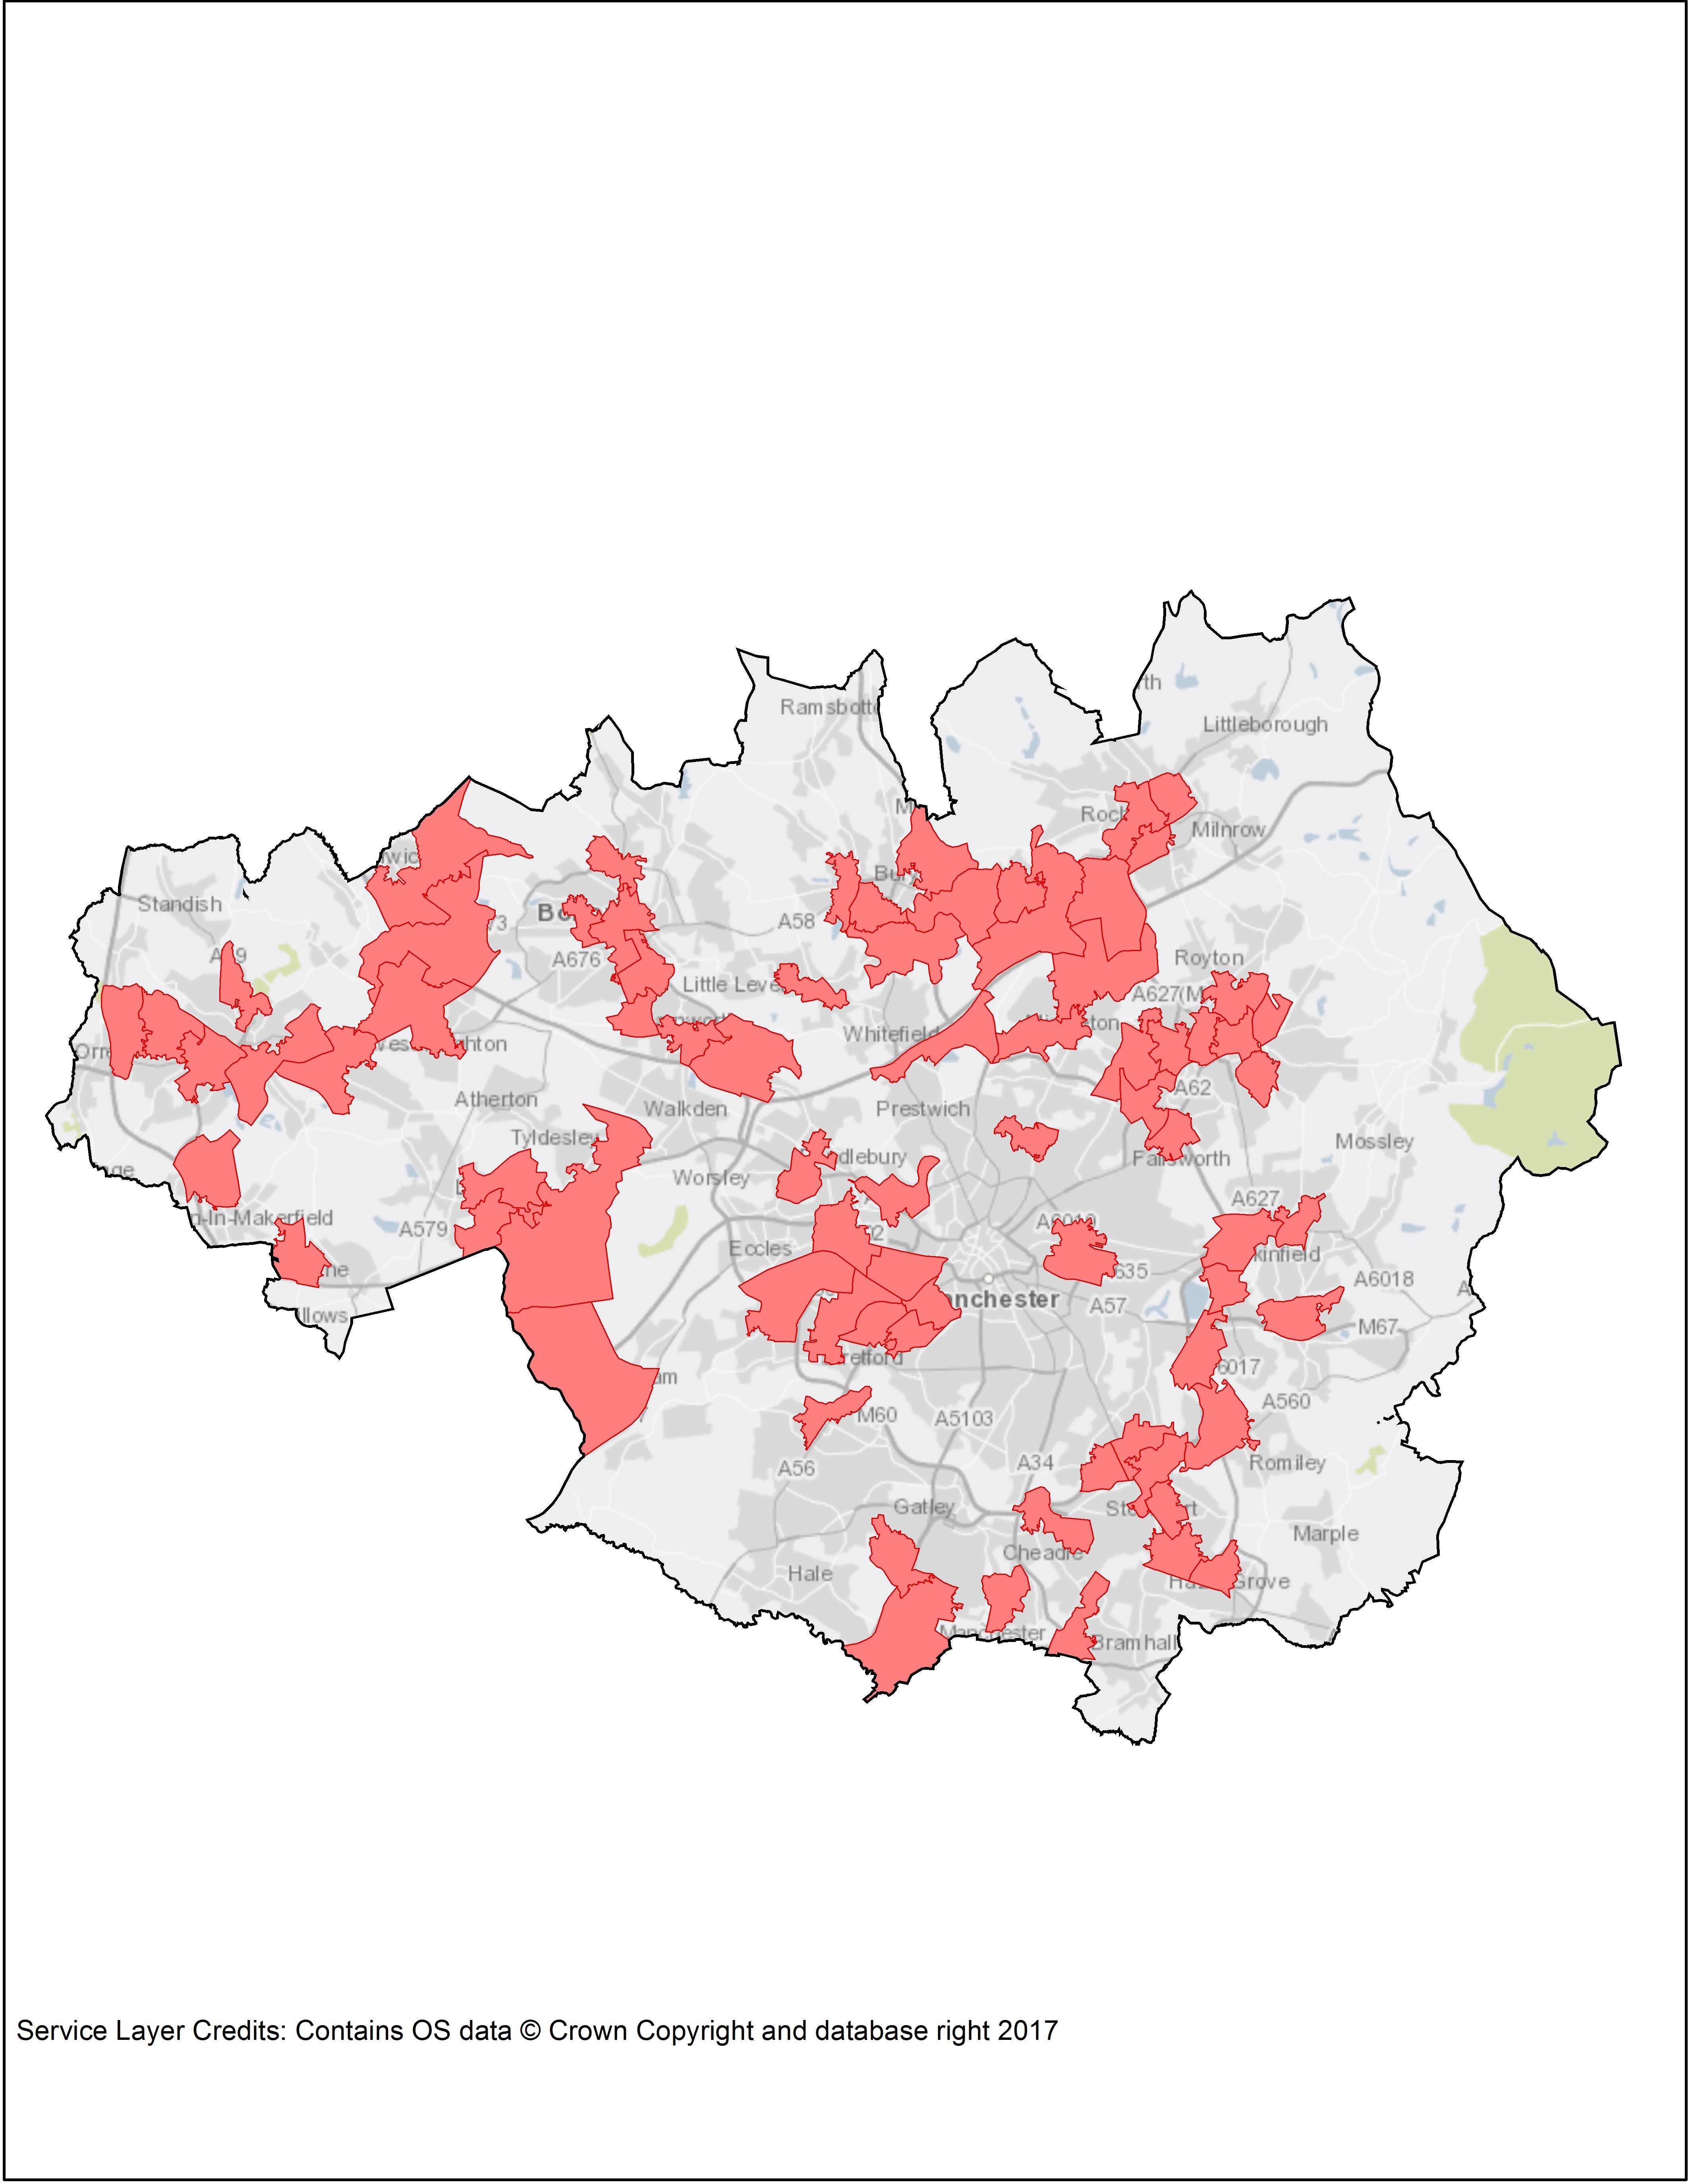 Areas in Greater Manchester with a high workday population and high percentage of car commutes